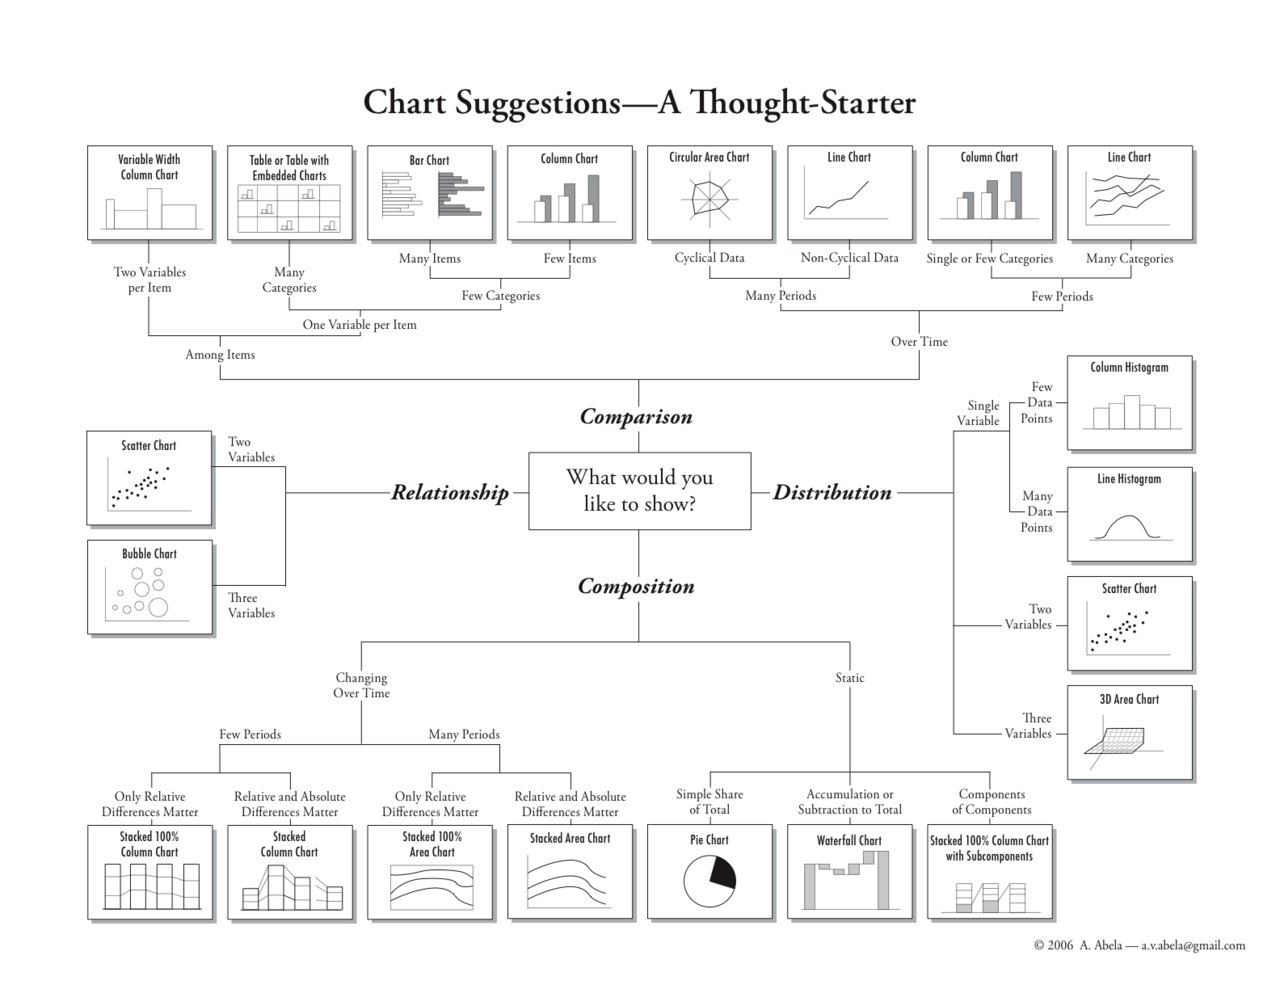 Andrew Abela's Chart Suggestions--A Thought Starter